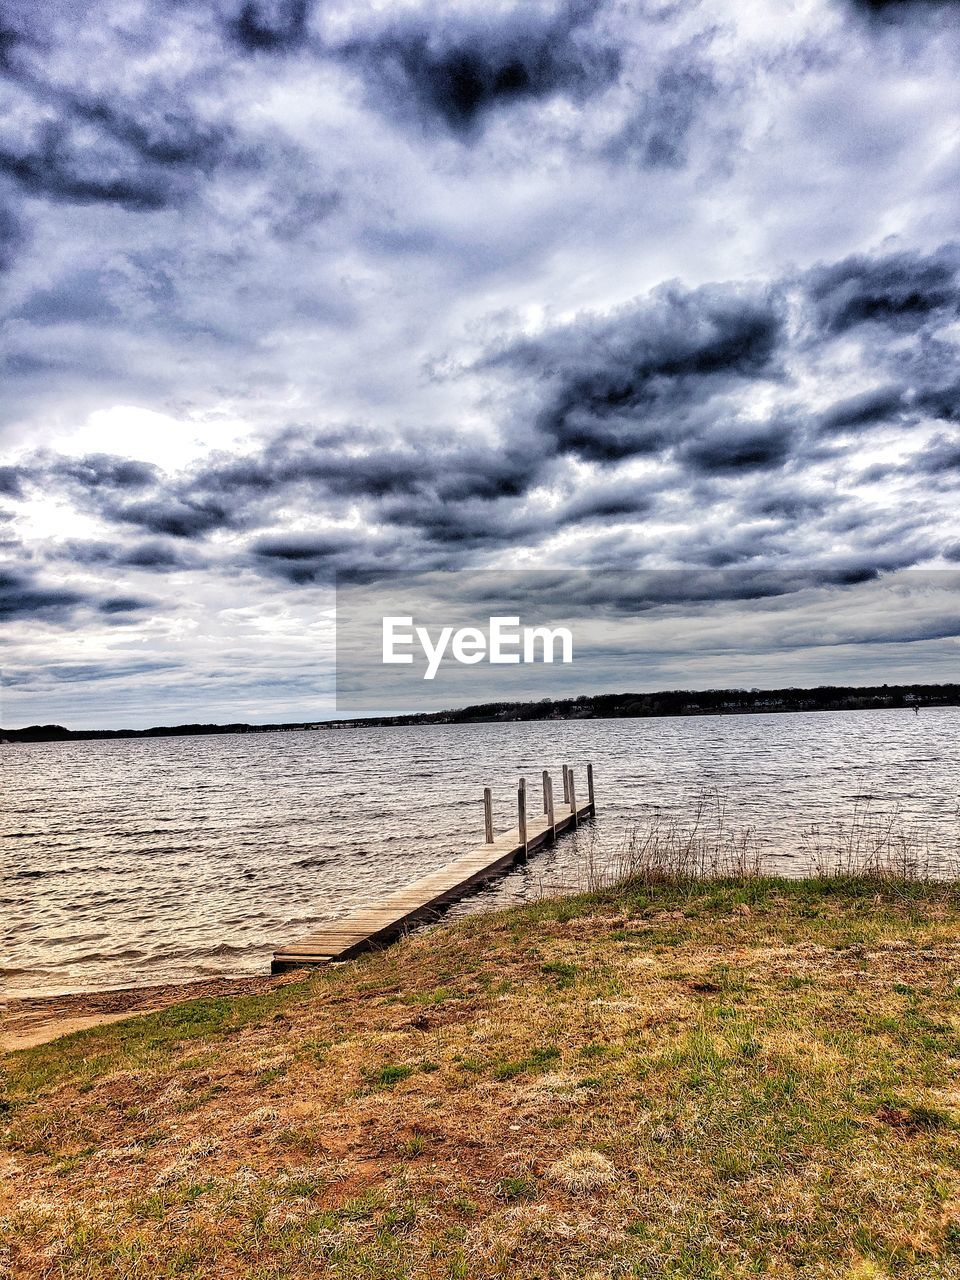 cloud - sky, sky, water, tranquility, sea, scenics - nature, tranquil scene, beauty in nature, land, nature, beach, no people, horizon, day, grass, horizon over water, wood - material, idyllic, outdoors